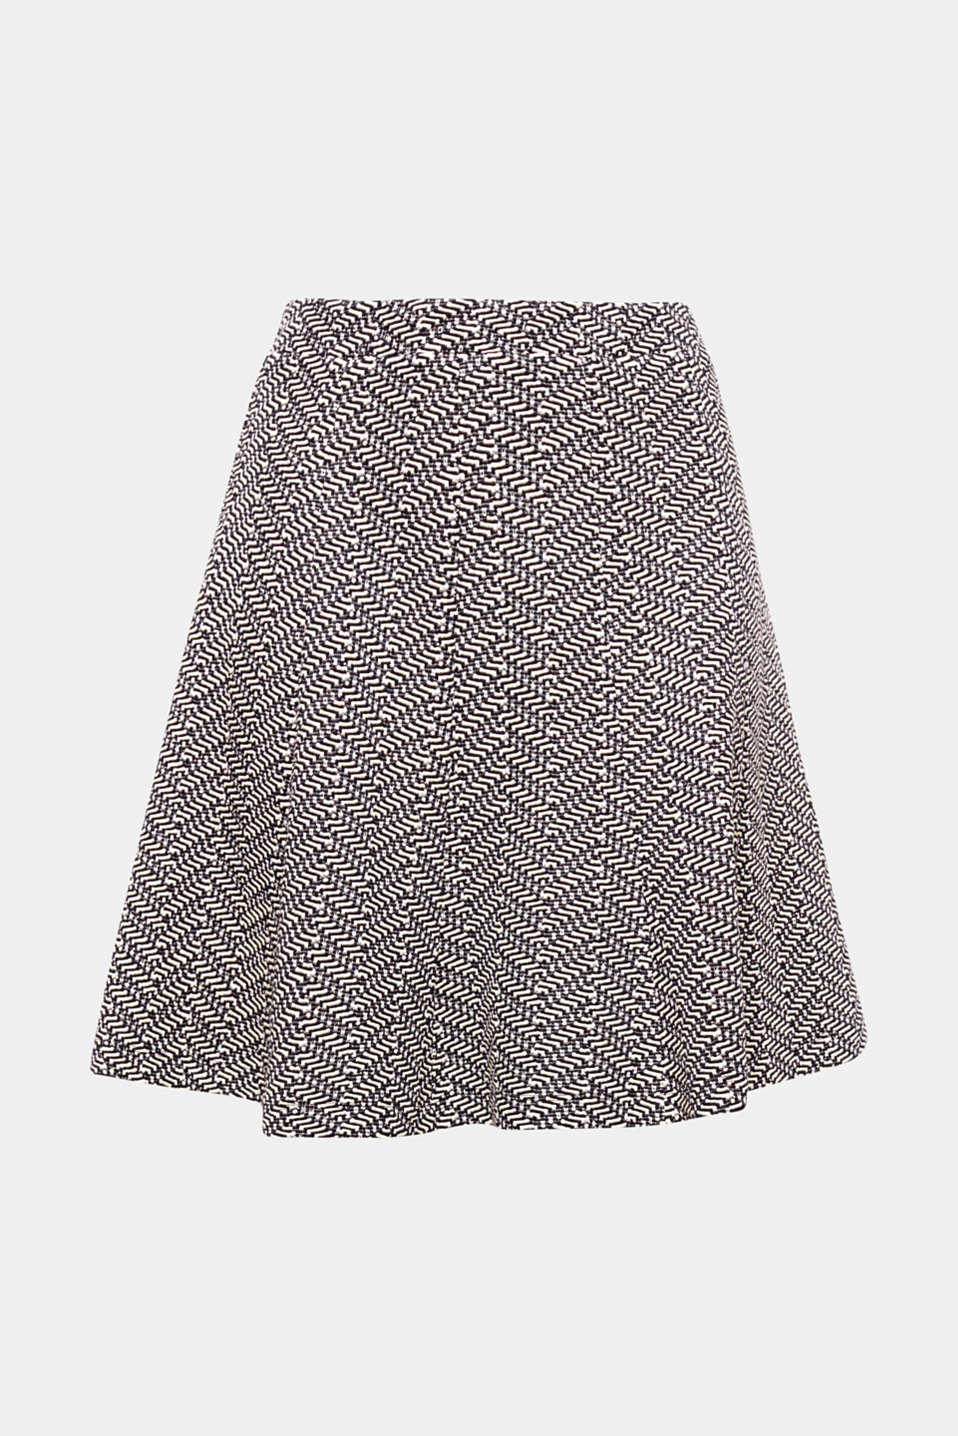 With its wide silhouette and distinctive zigzag texture, this piece will add movement to your look: skirt in compact jersey with an elasticated waistband.